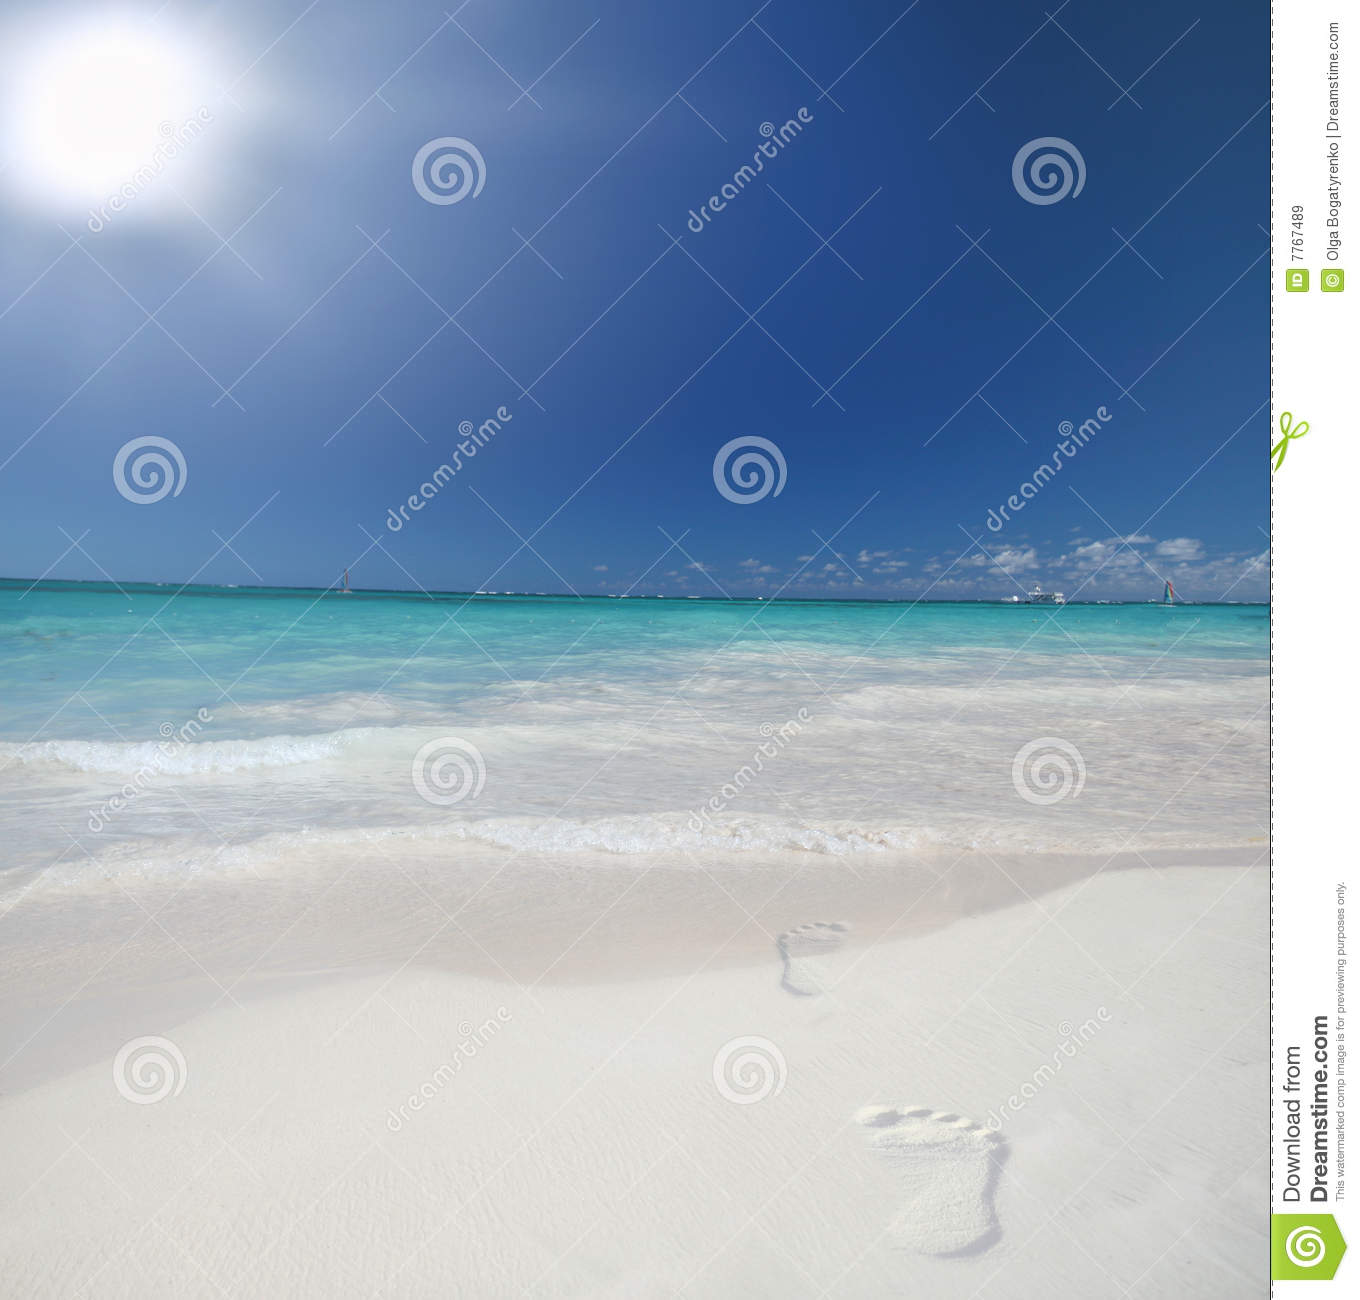 Tropical Beach And Peaceful Ocean: Tropical Beach And Ocean With Footprints Stock Image